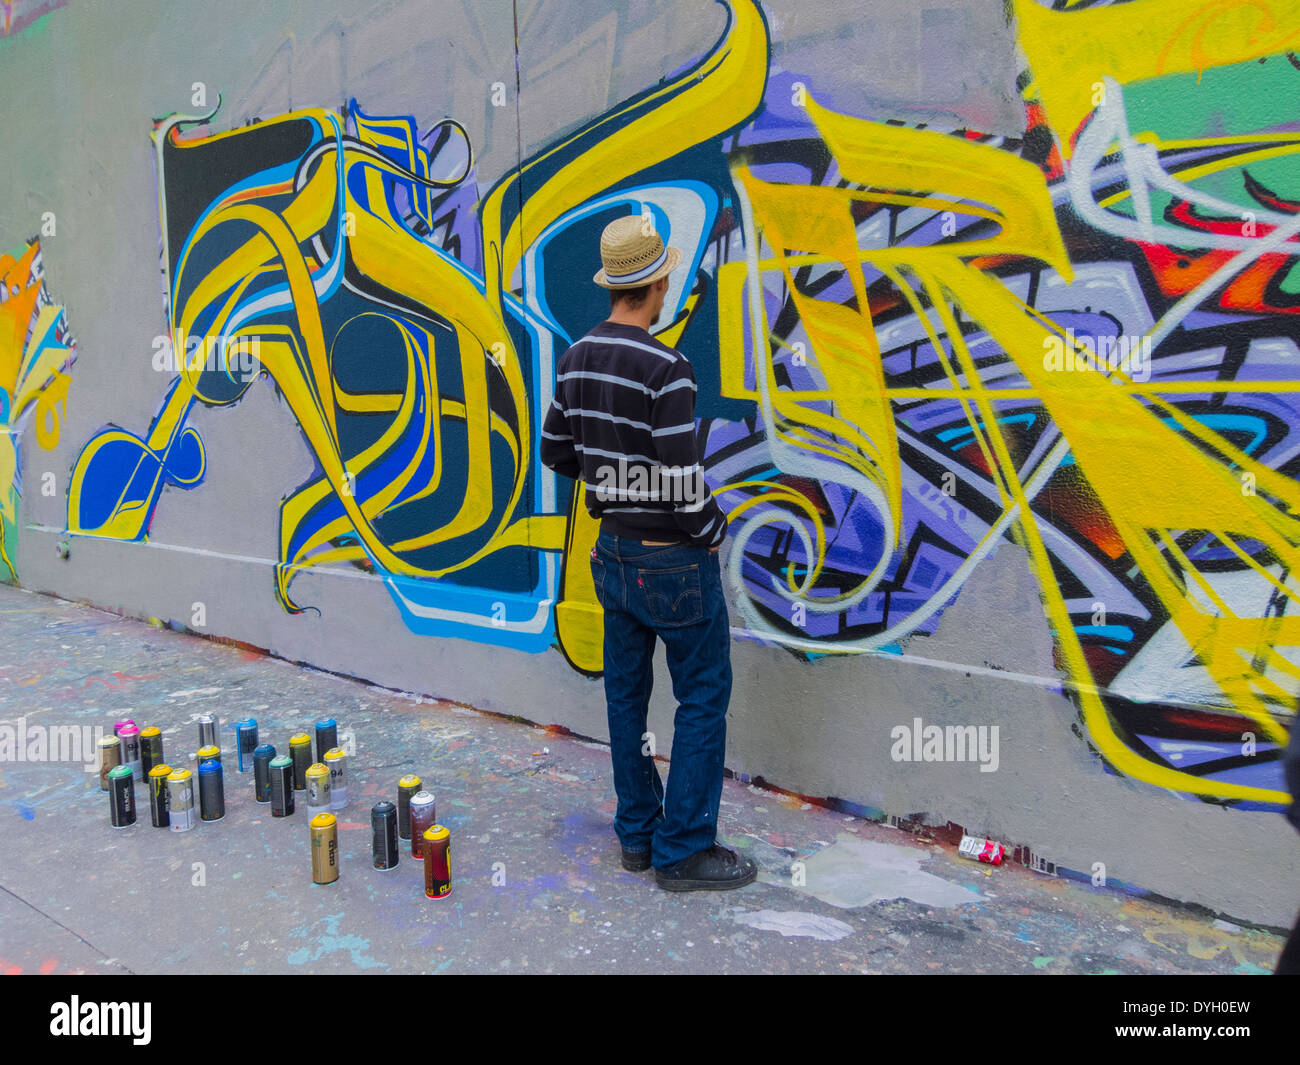 paris, france, young french teen, graffiti artist, painting wall on